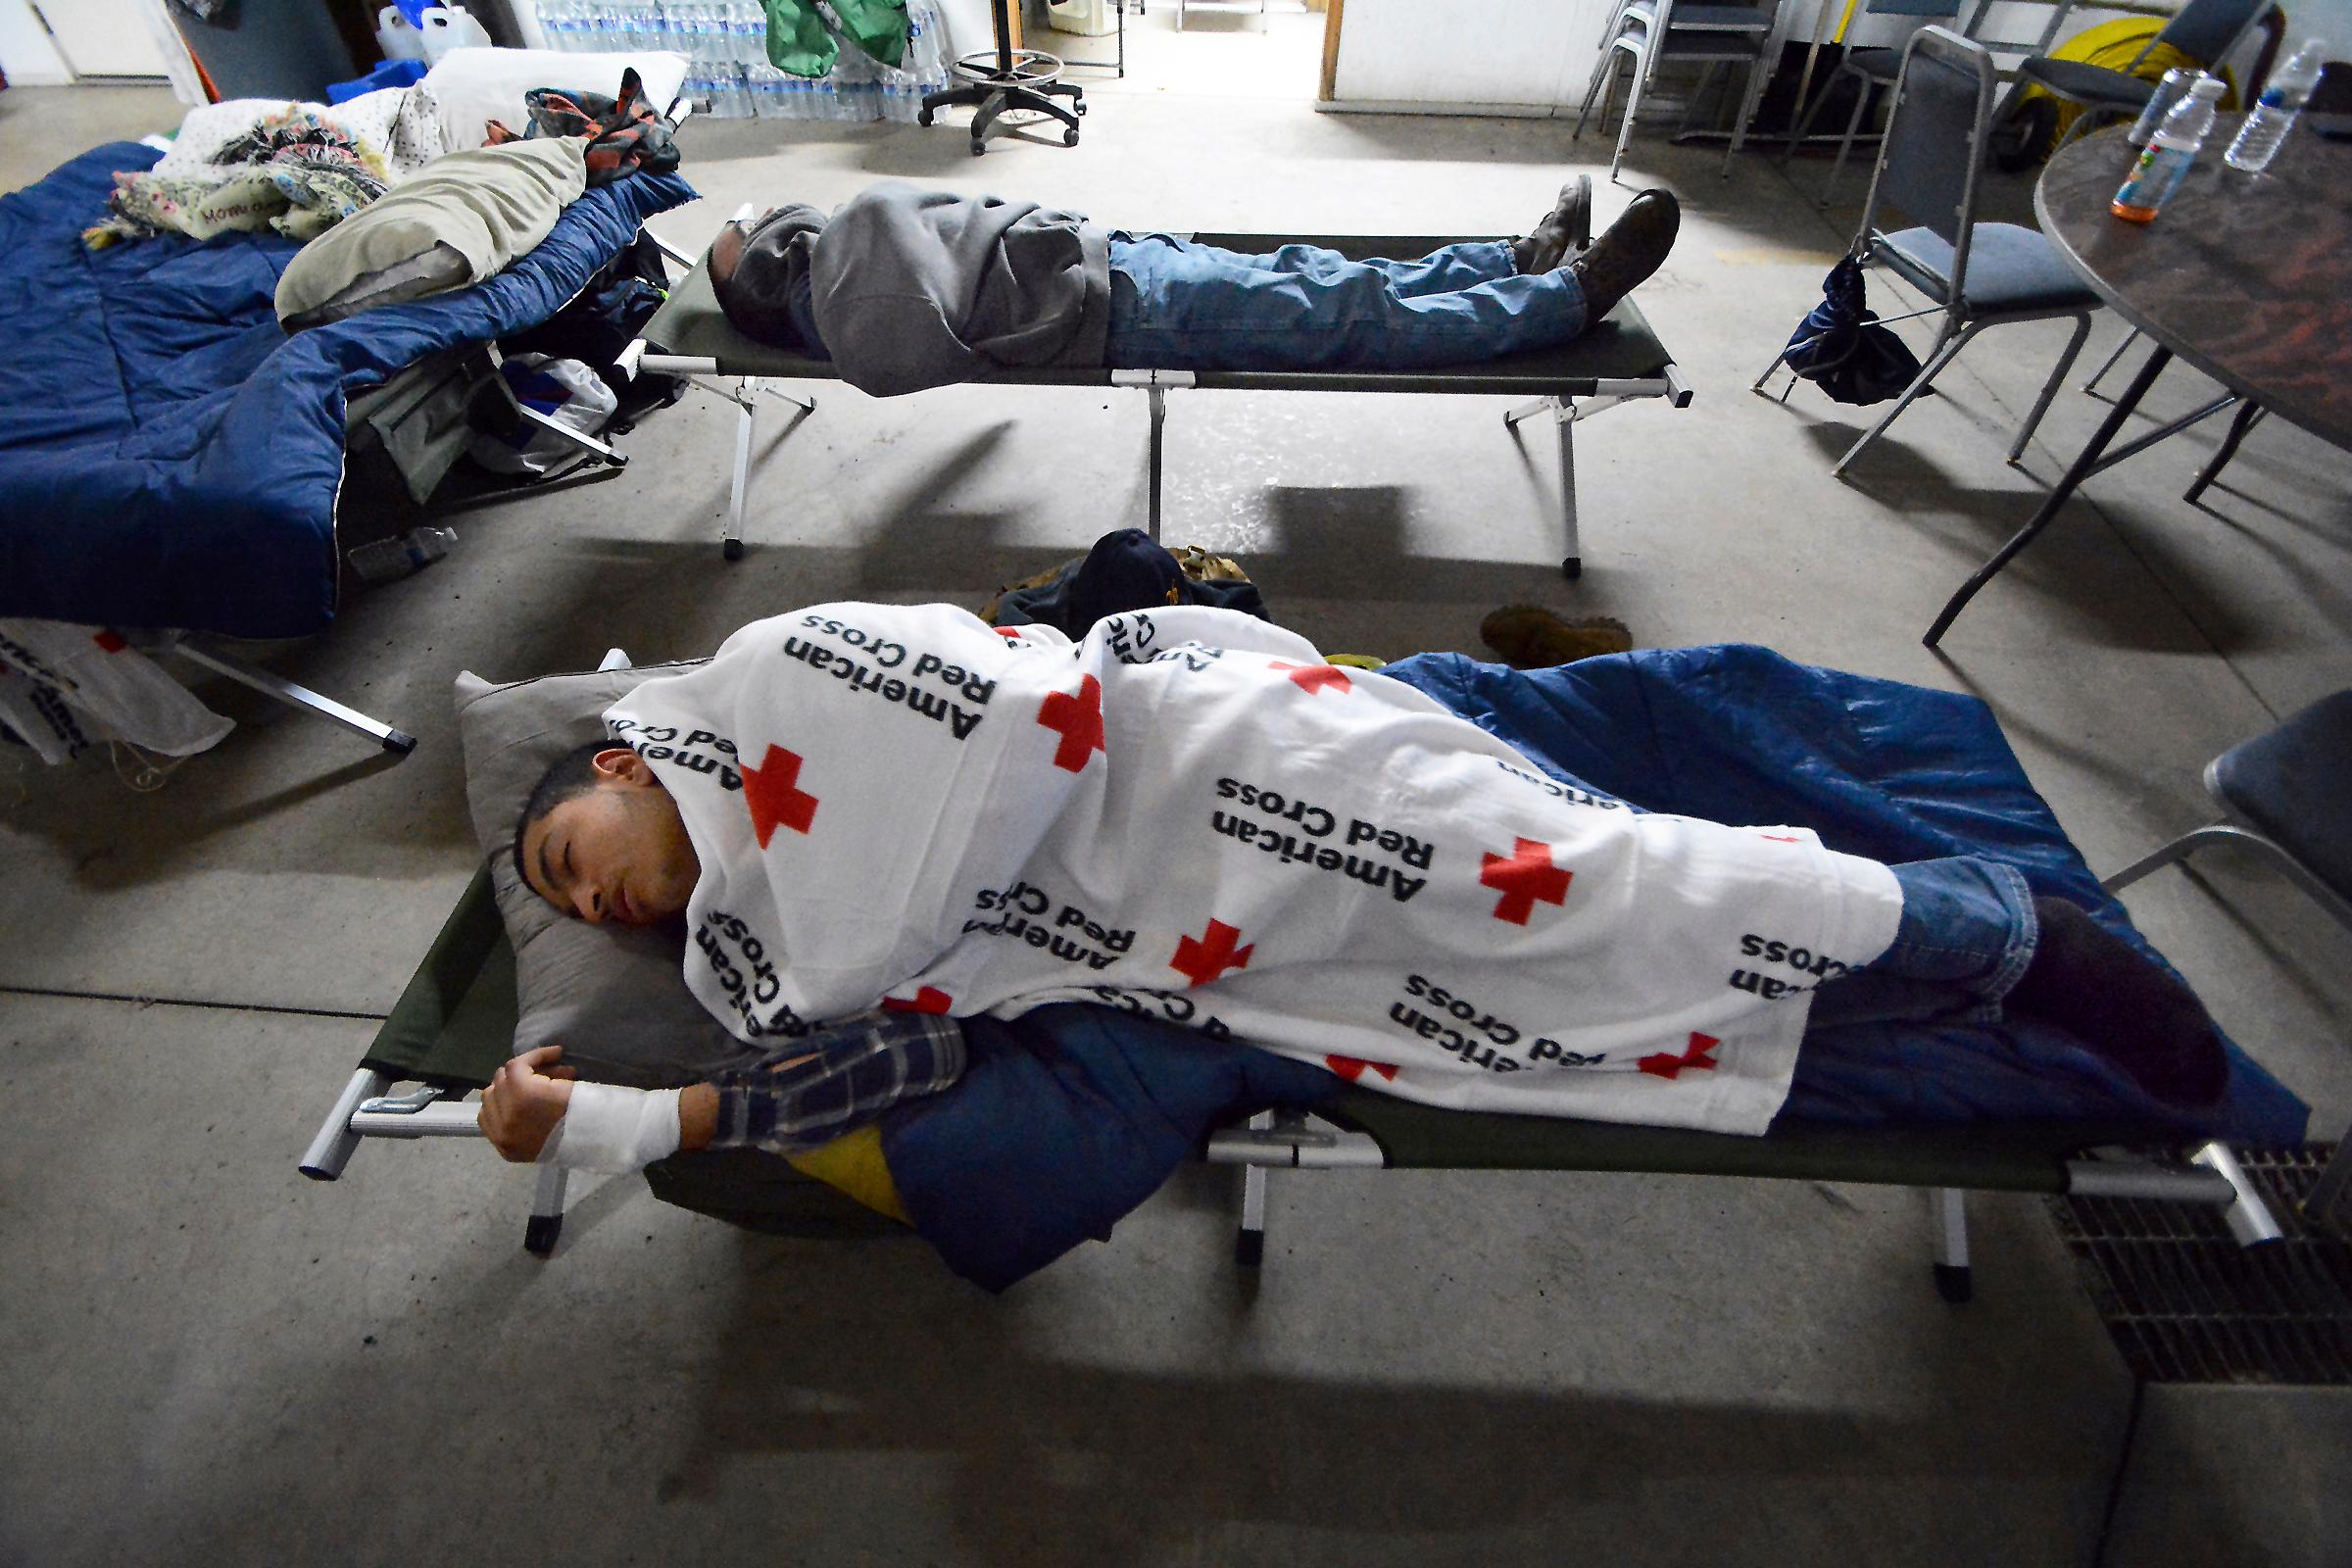 Residents sleep inside the Dingman Township Volunteer Fire Department in Dingman Township, Pa., on Wednesday, March 7, 2018, during the second snow storm that hit the region in Northeastern Pennsylvania in less then a week. The fire department has been used as a make-shift shelter for area residents who have no power or water in their homes. Its been running as a shelter since last Friday. ( Butch Comegys / The Scranton Times-Tribune via AP)